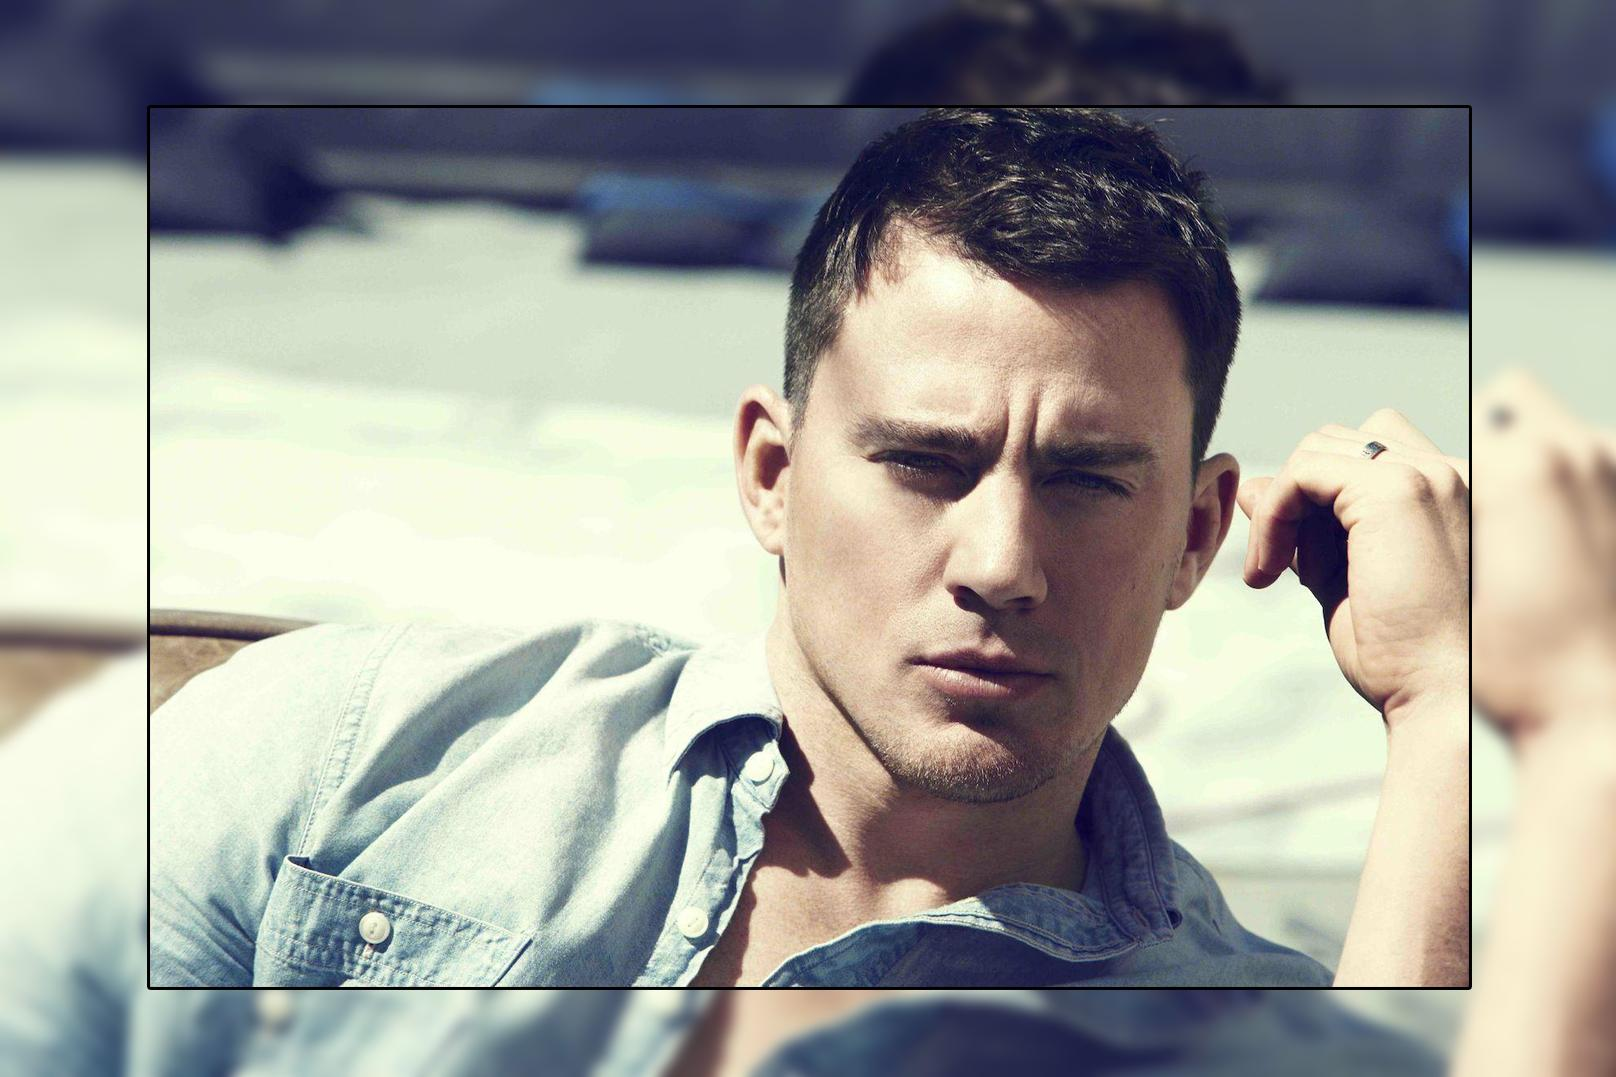 Channing Tatum Hd Wallpapers For Android Apk Download